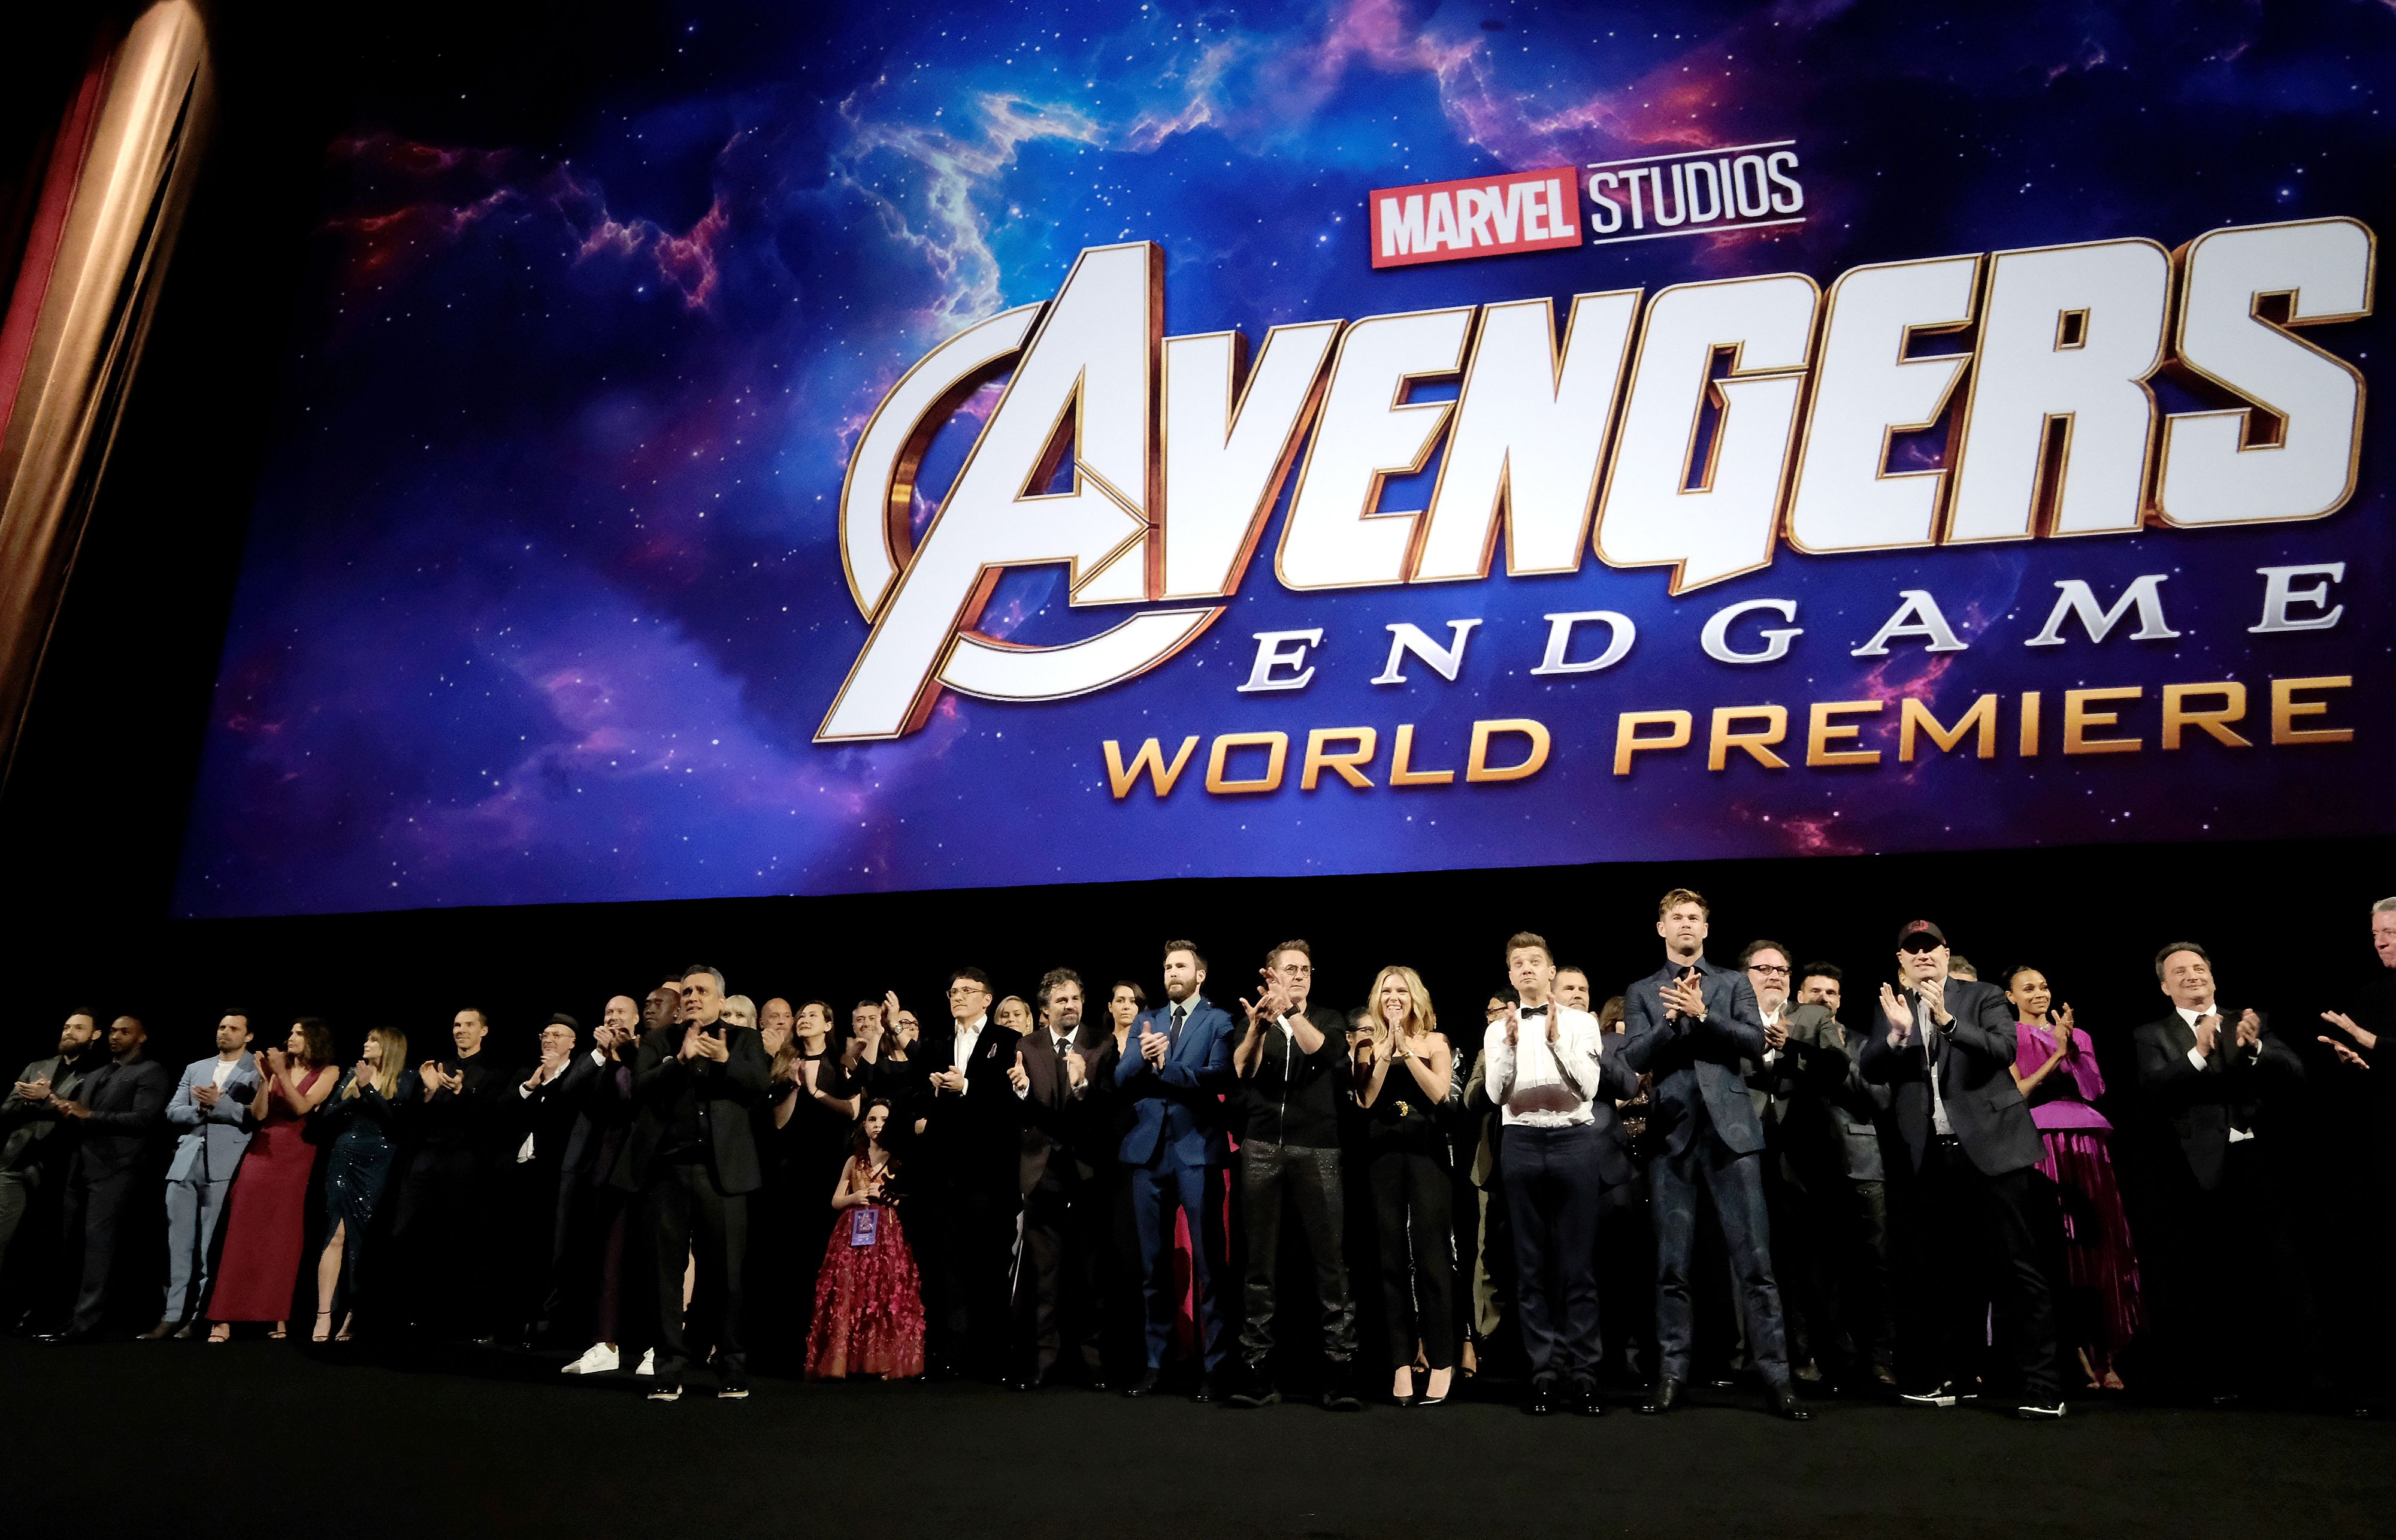 'Avengers Endgame' World Premiere